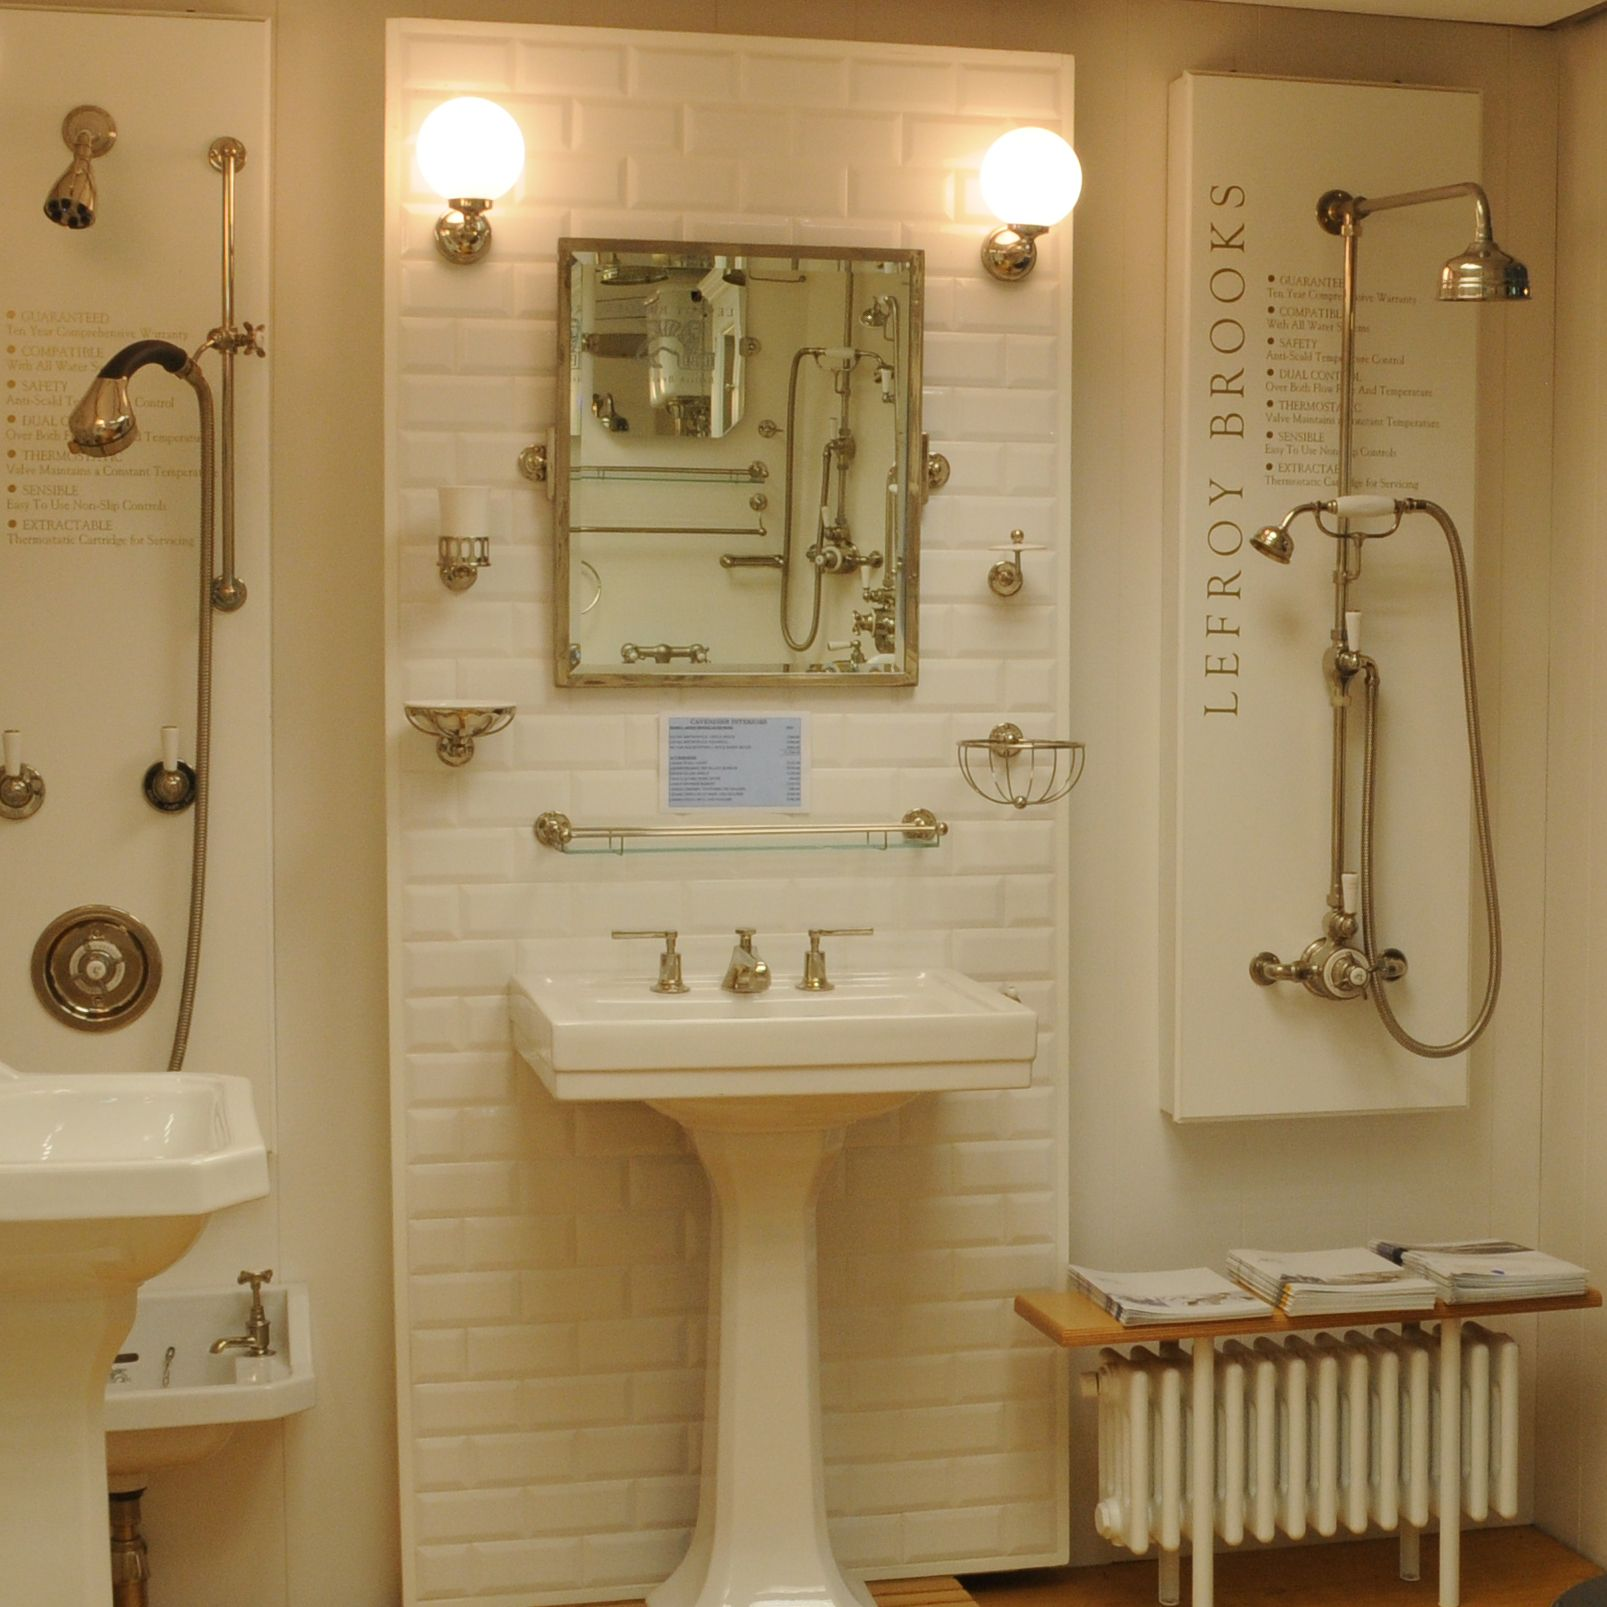 Fairfield Bathroom Showroom Buxton http://www.360spin.com/fairfield ...